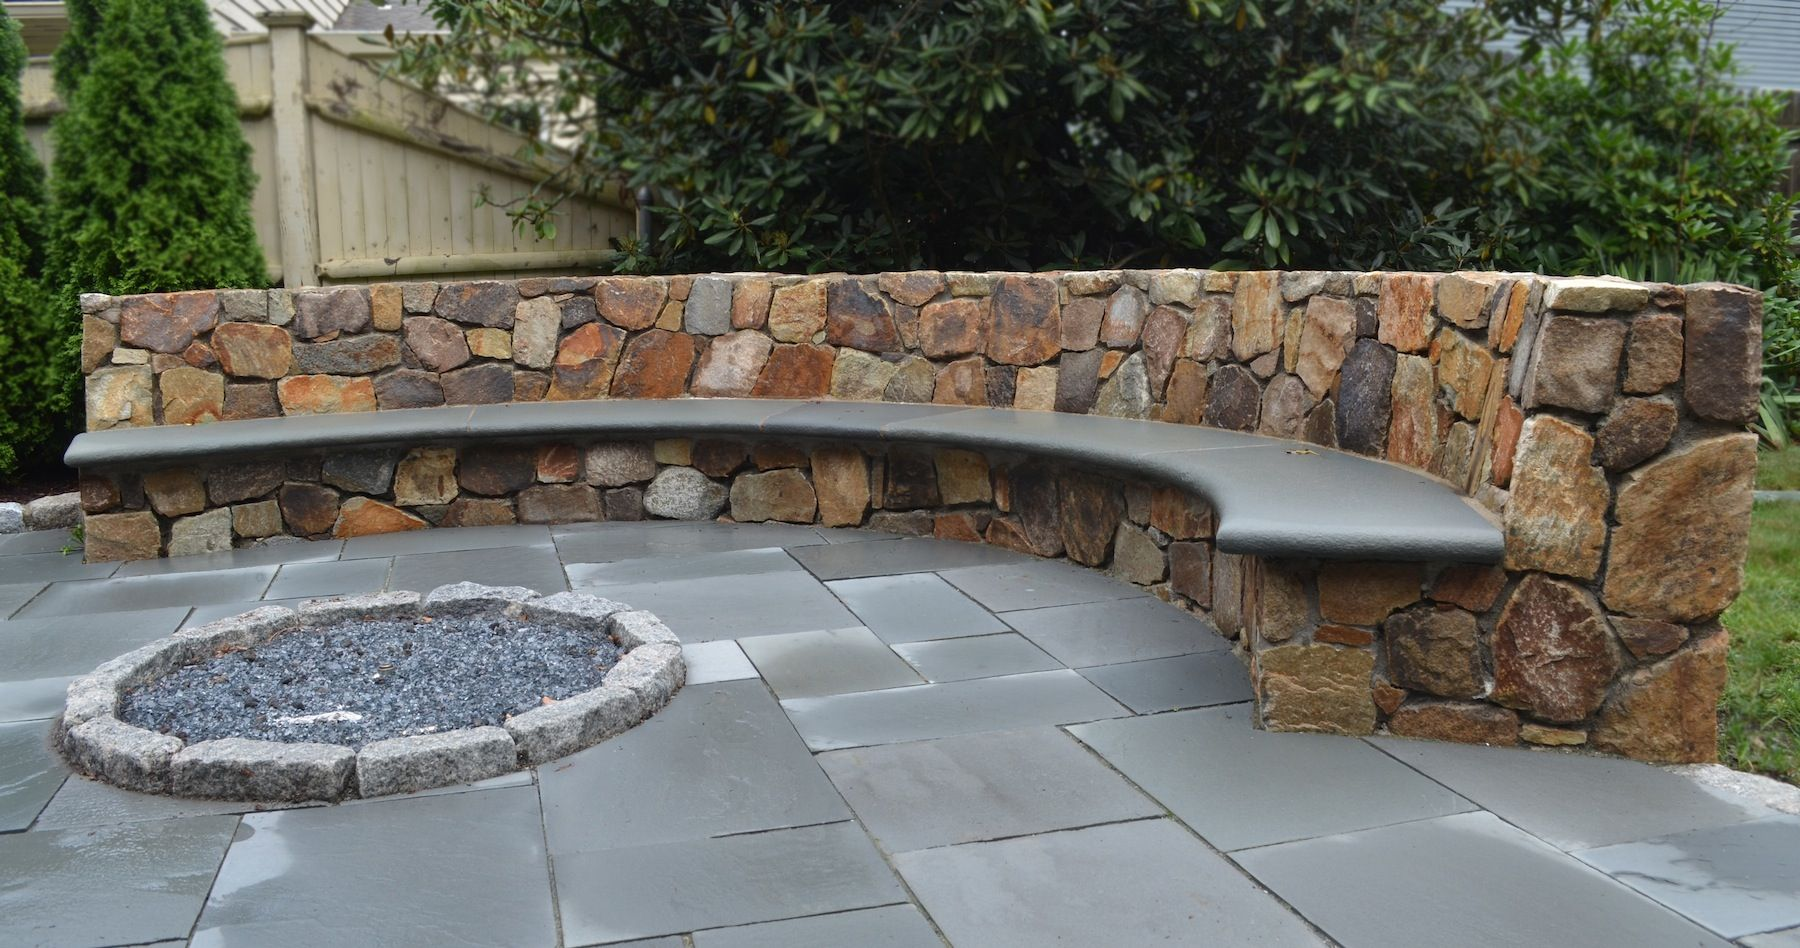 Exceptional Outdoor Benches | Outdoor Patio, Stone Bench And Fire Pit | Model Masonry  And TileModel